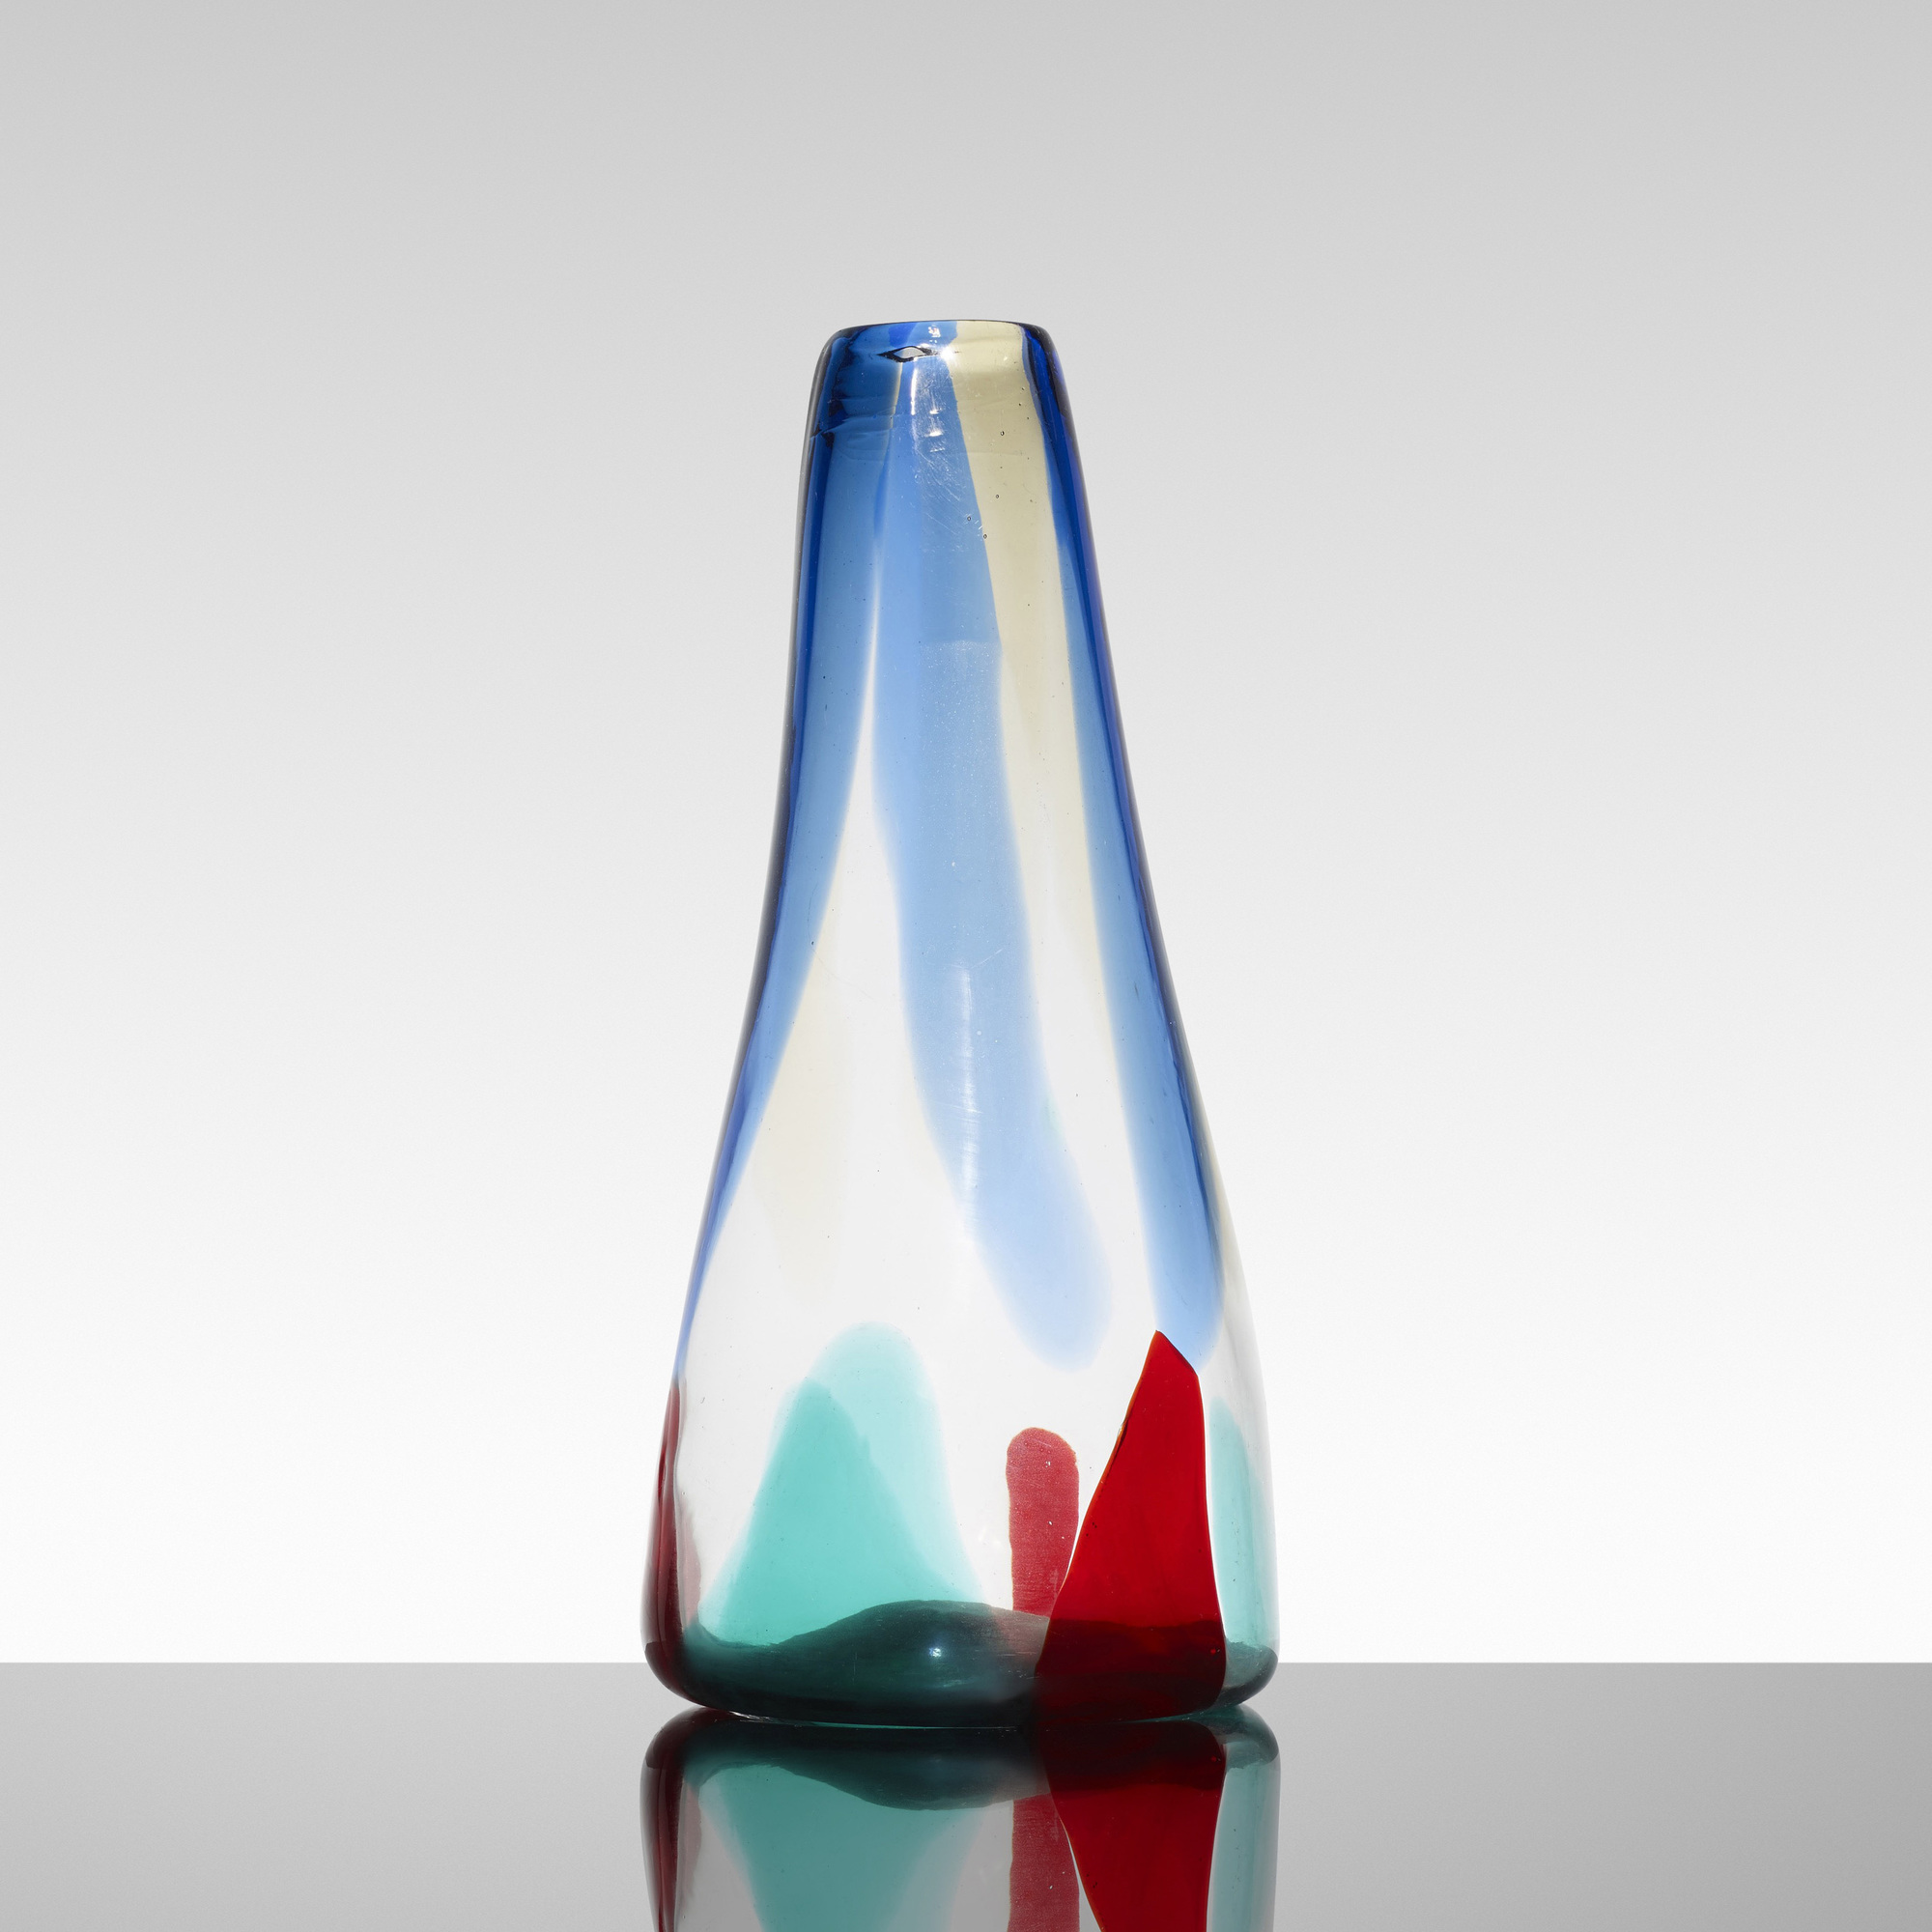 139: Fulvio Bianconi / Pezzame vase, model 4394 (2 of 3)